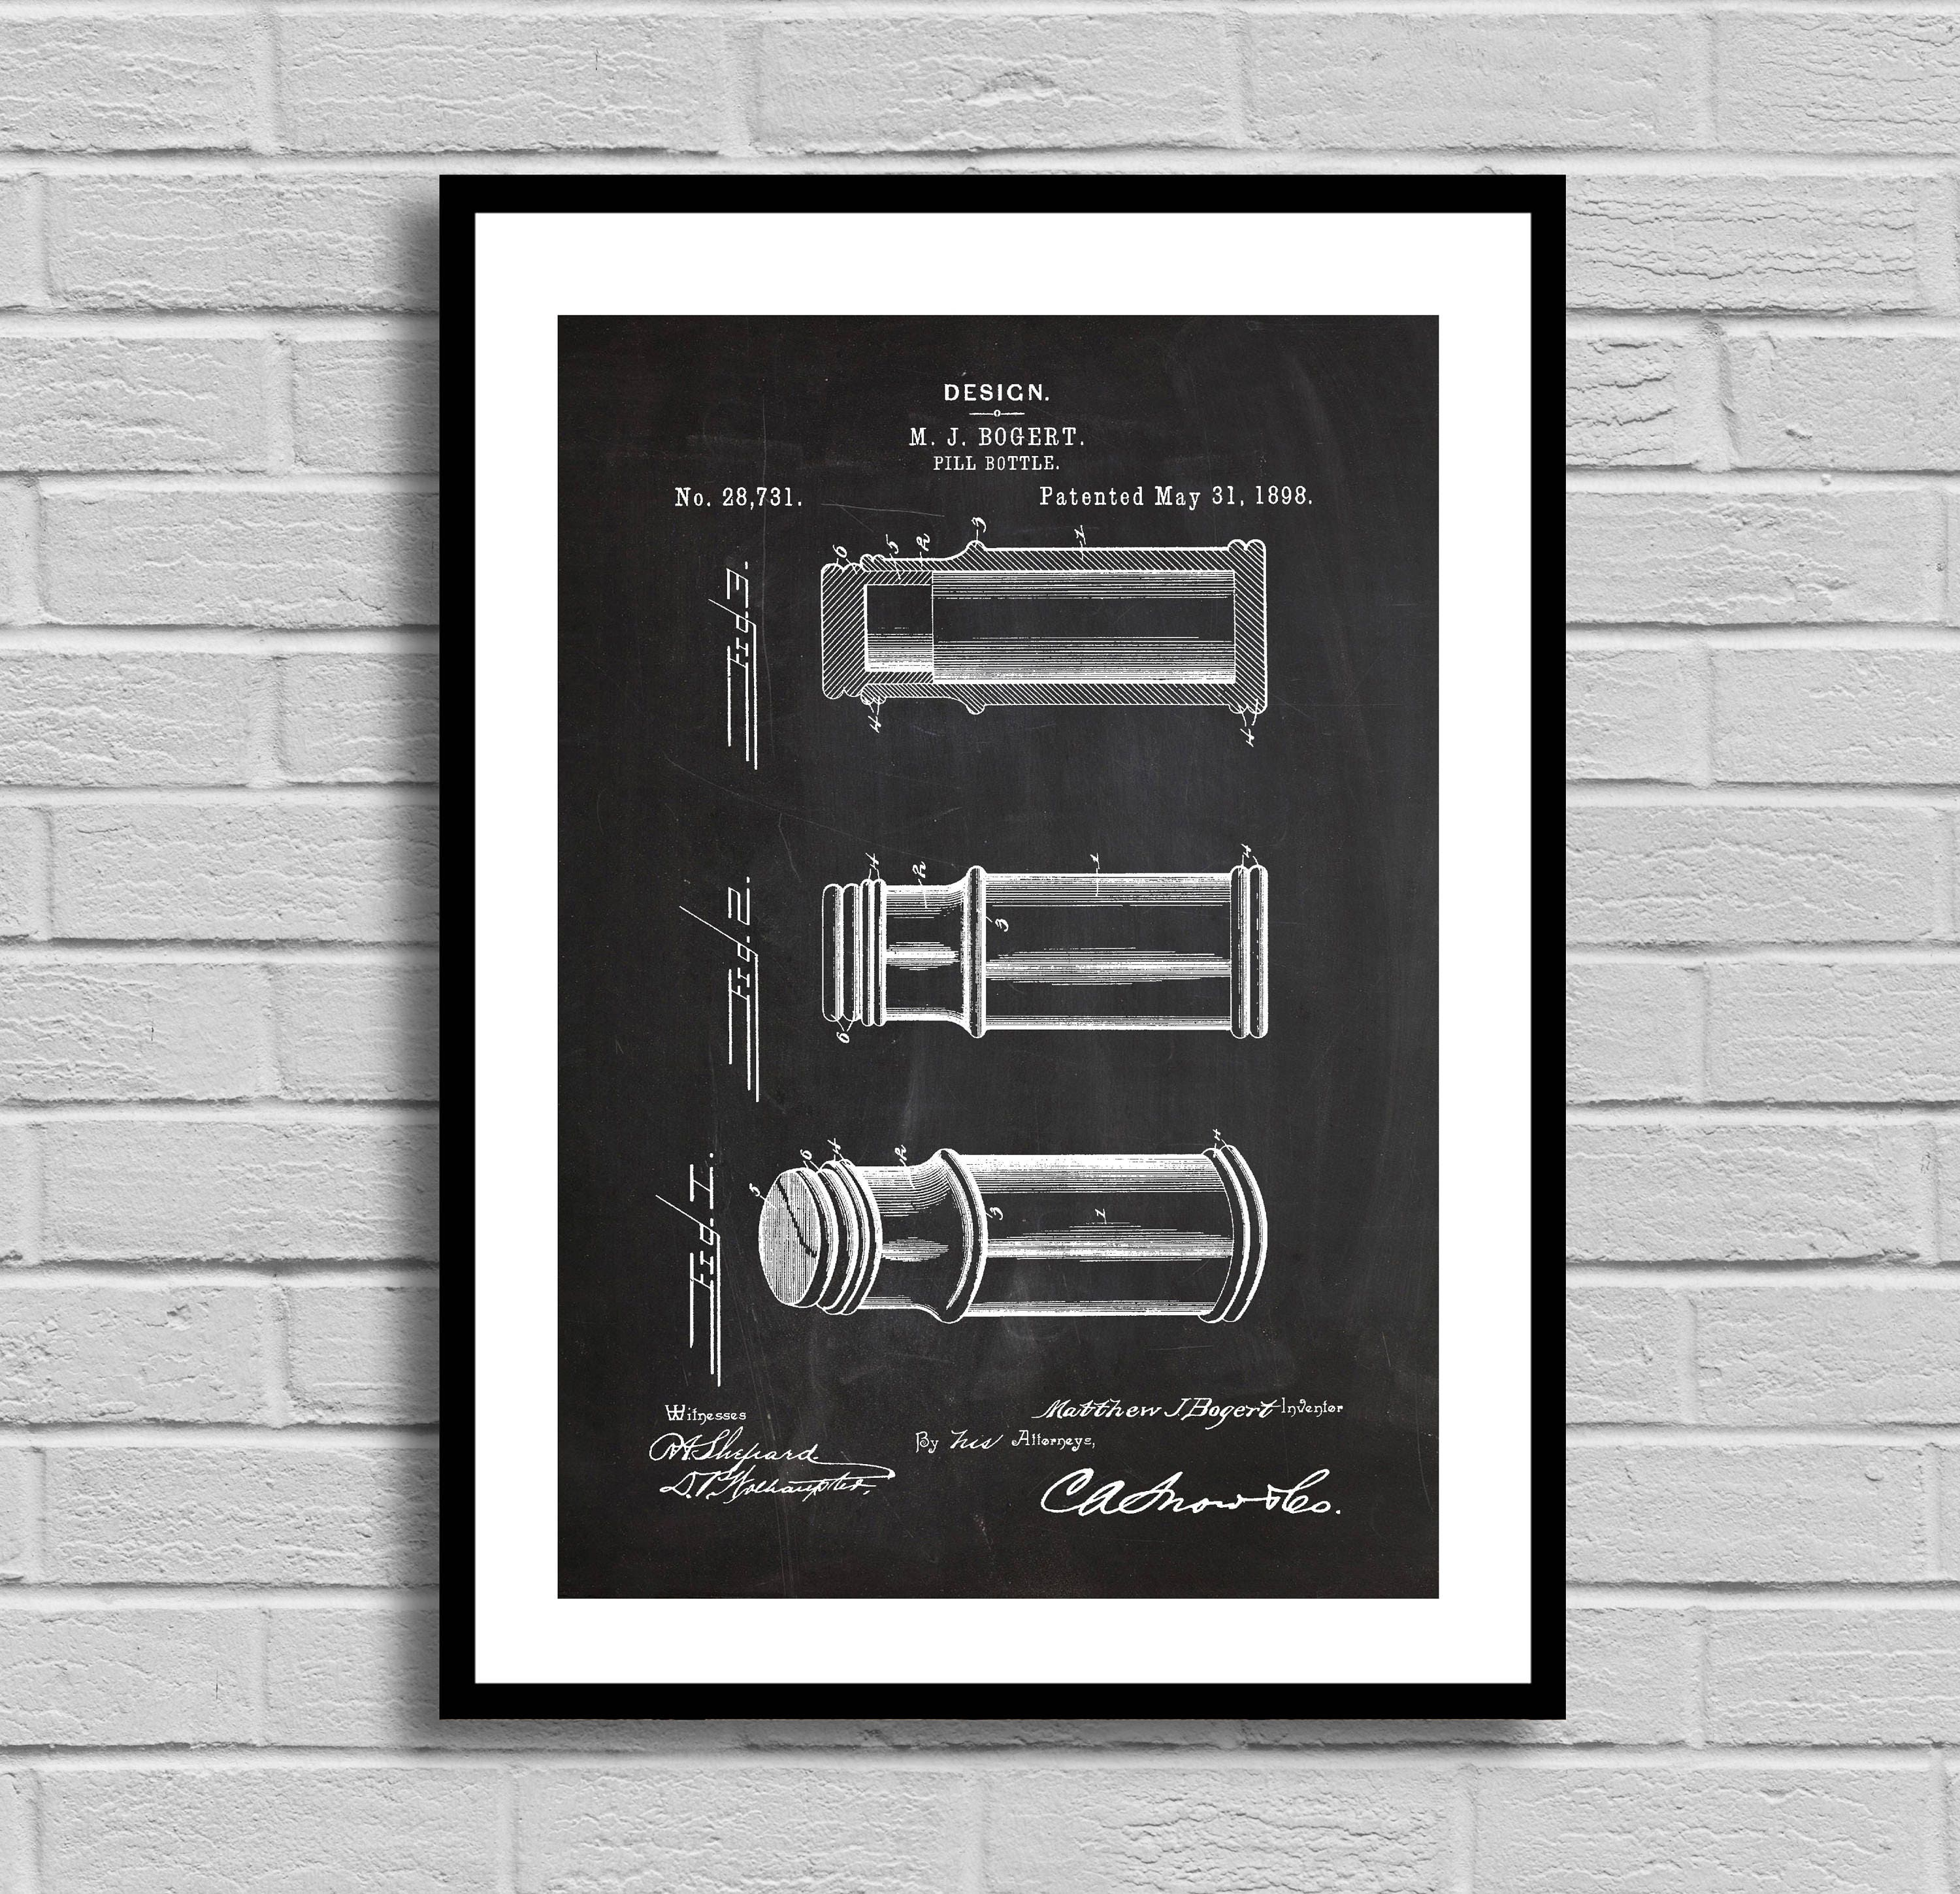 Medicine pill bottle patent medicine pill bottle patent poster medicine pill bottle patent medicine pill bottle patent poster medicine pill bottle blueprint medicine pill bottle print medical gift malvernweather Choice Image